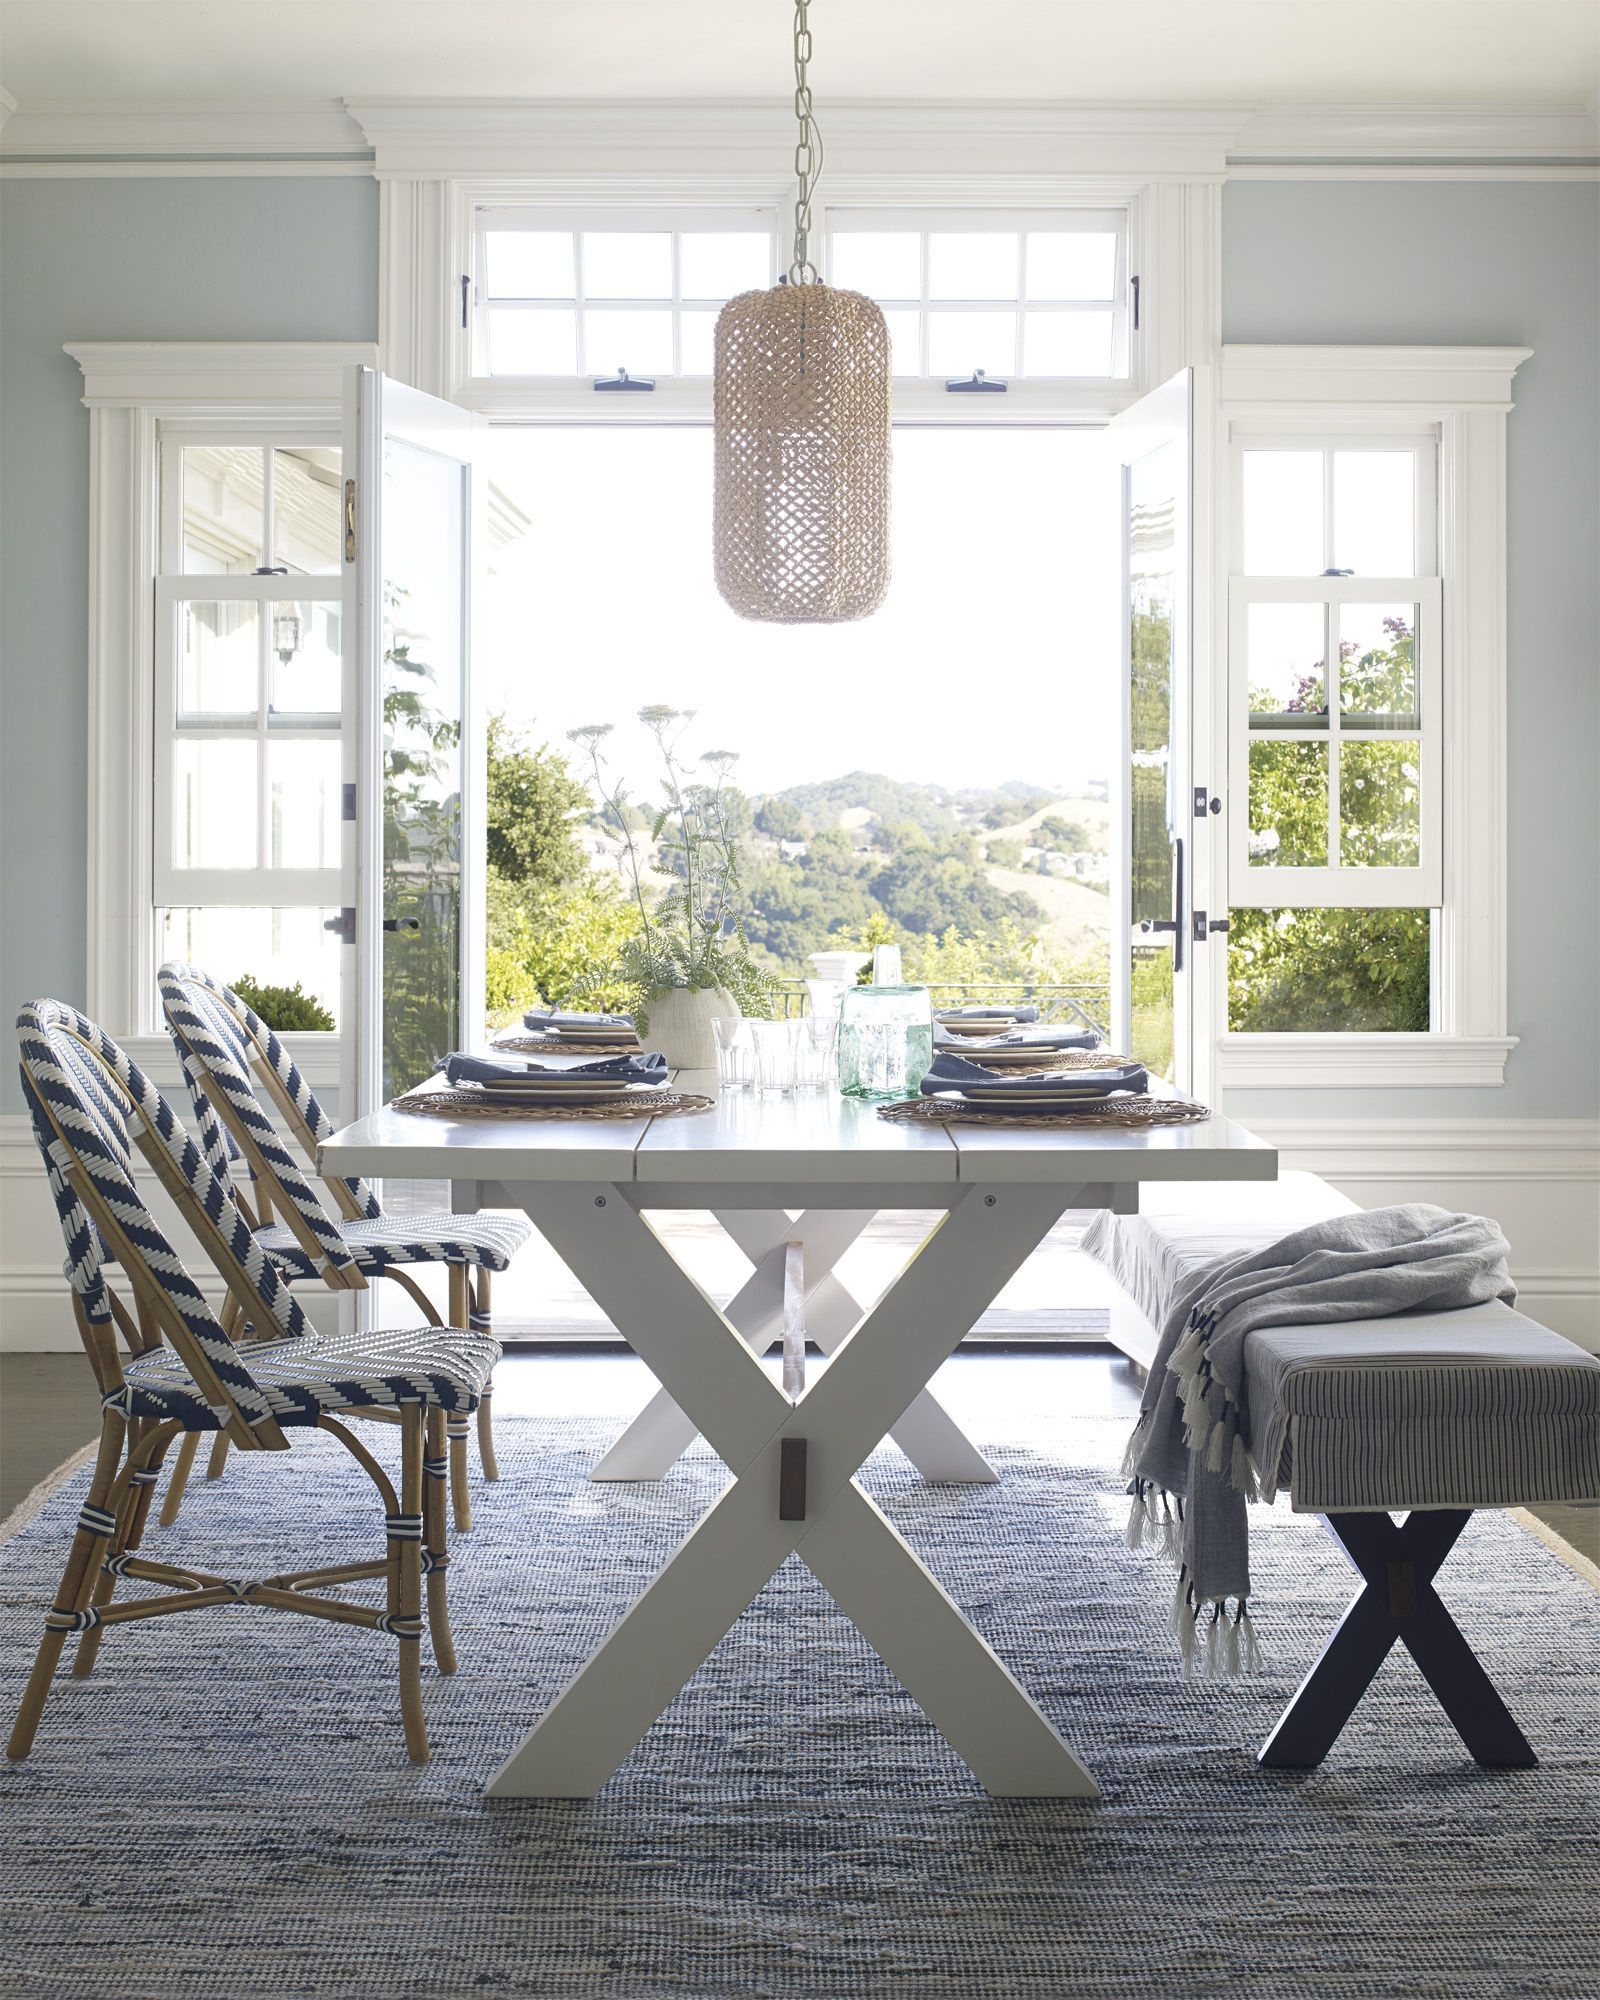 16 Absolutely Gorgeous Mediterranean Dining Room Designs: Home Decor, Beach House Decor, Dining